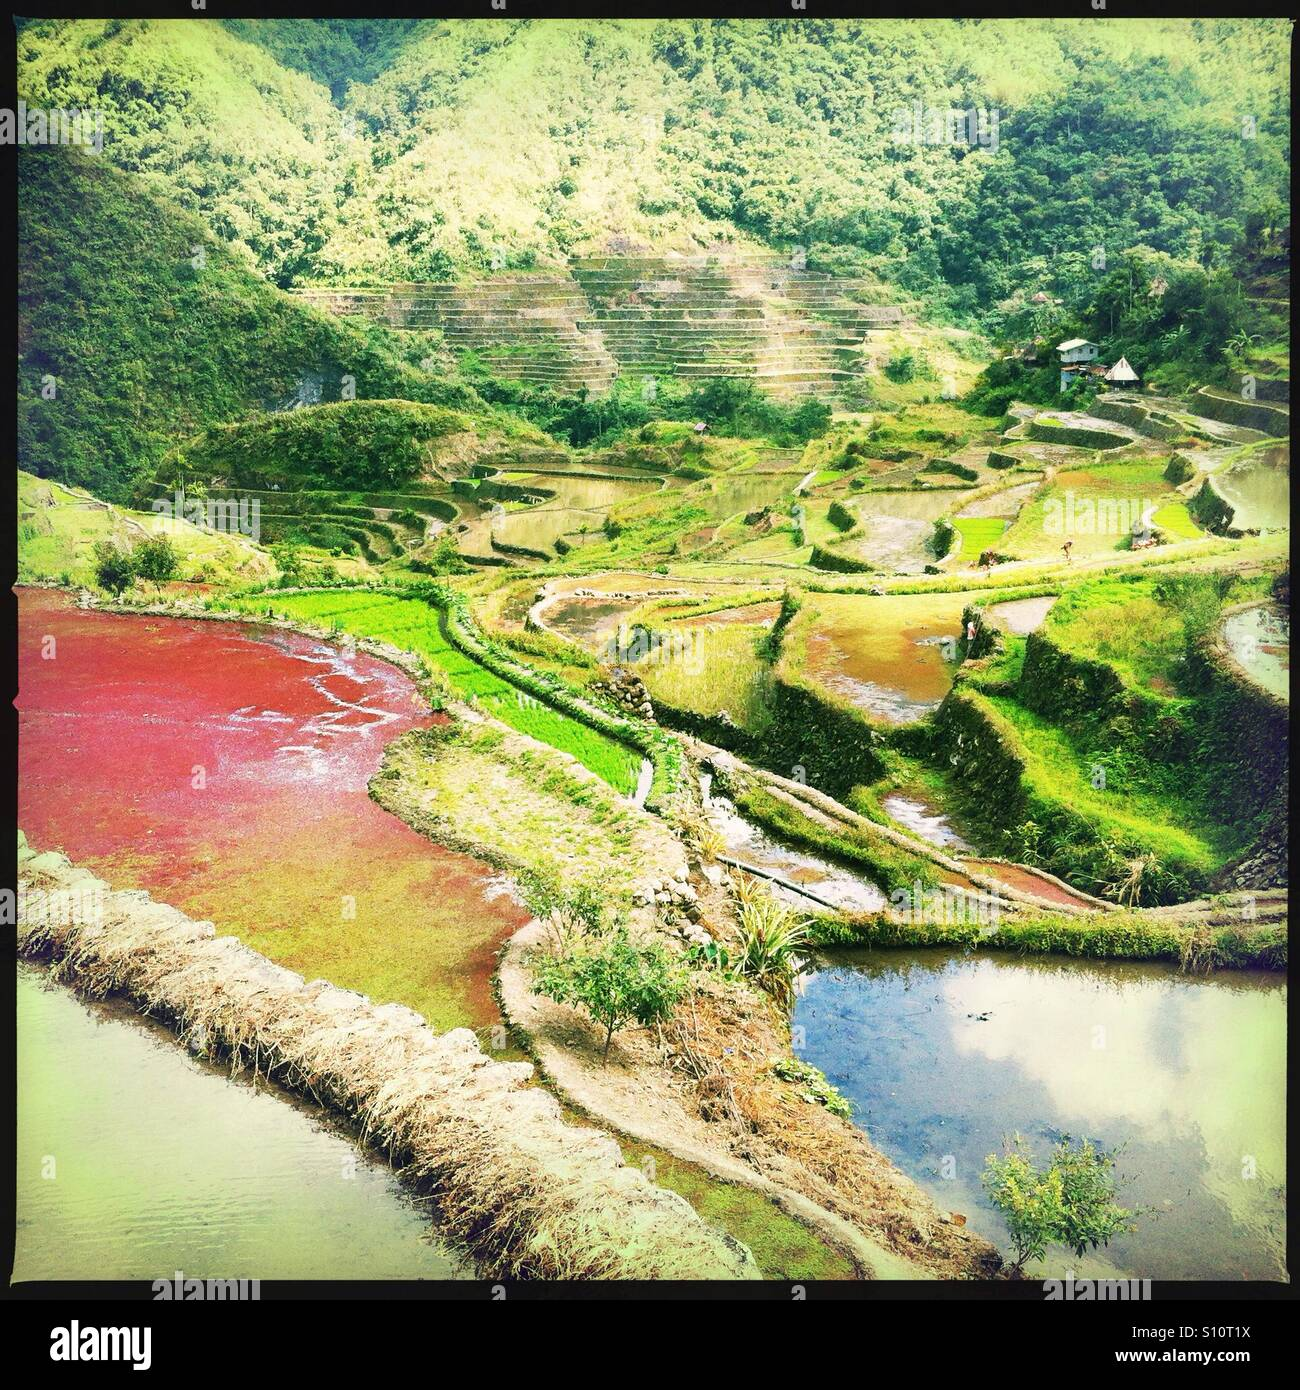 Batad rice terraces, Banaue, Ifugao Province, Northern Luzon, Philippines - Stock Image